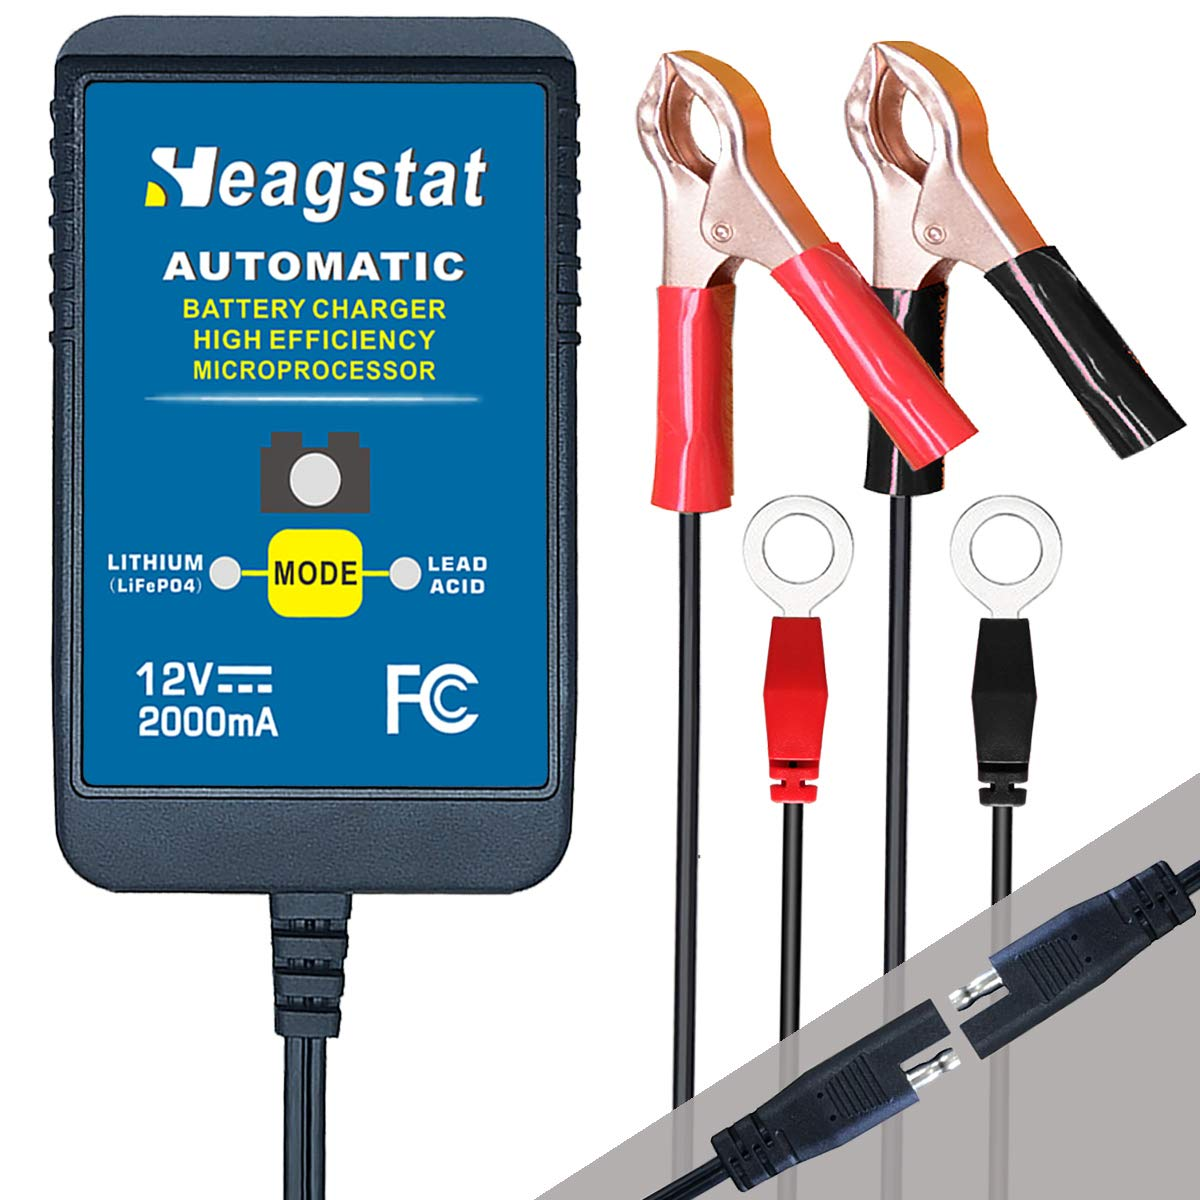 Heagstat 12V 2000mA Automatic Trickle Battery Charger Smart Battery Maintainer for Auto Car Motorcycle Lawn Mower Boat ATV SLA AGM GEL CELL Lead Acid or 12V Lithium(LiFePO4) Batteries